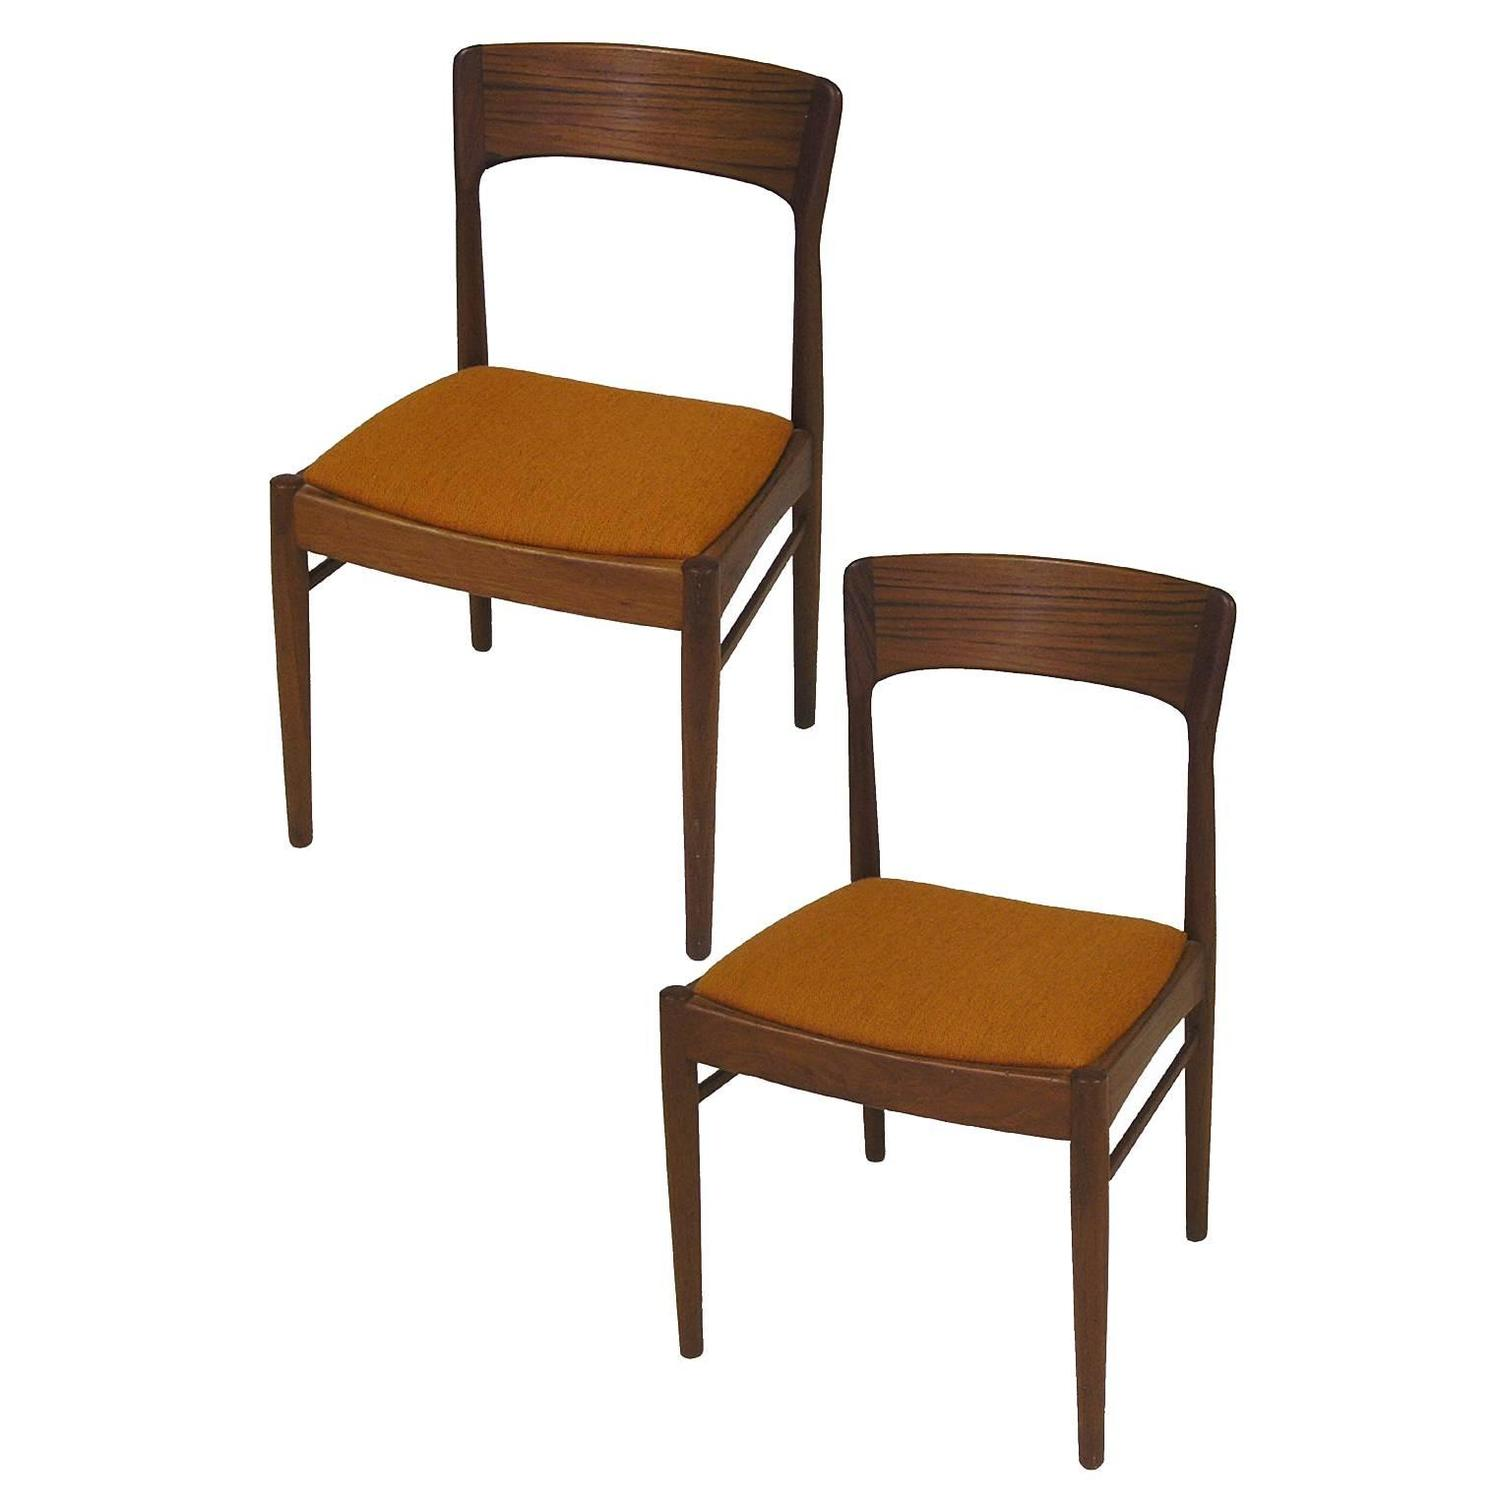 Teak Chair 1960s danish teak chairskai kristiansen, pair for sale at 1stdibs